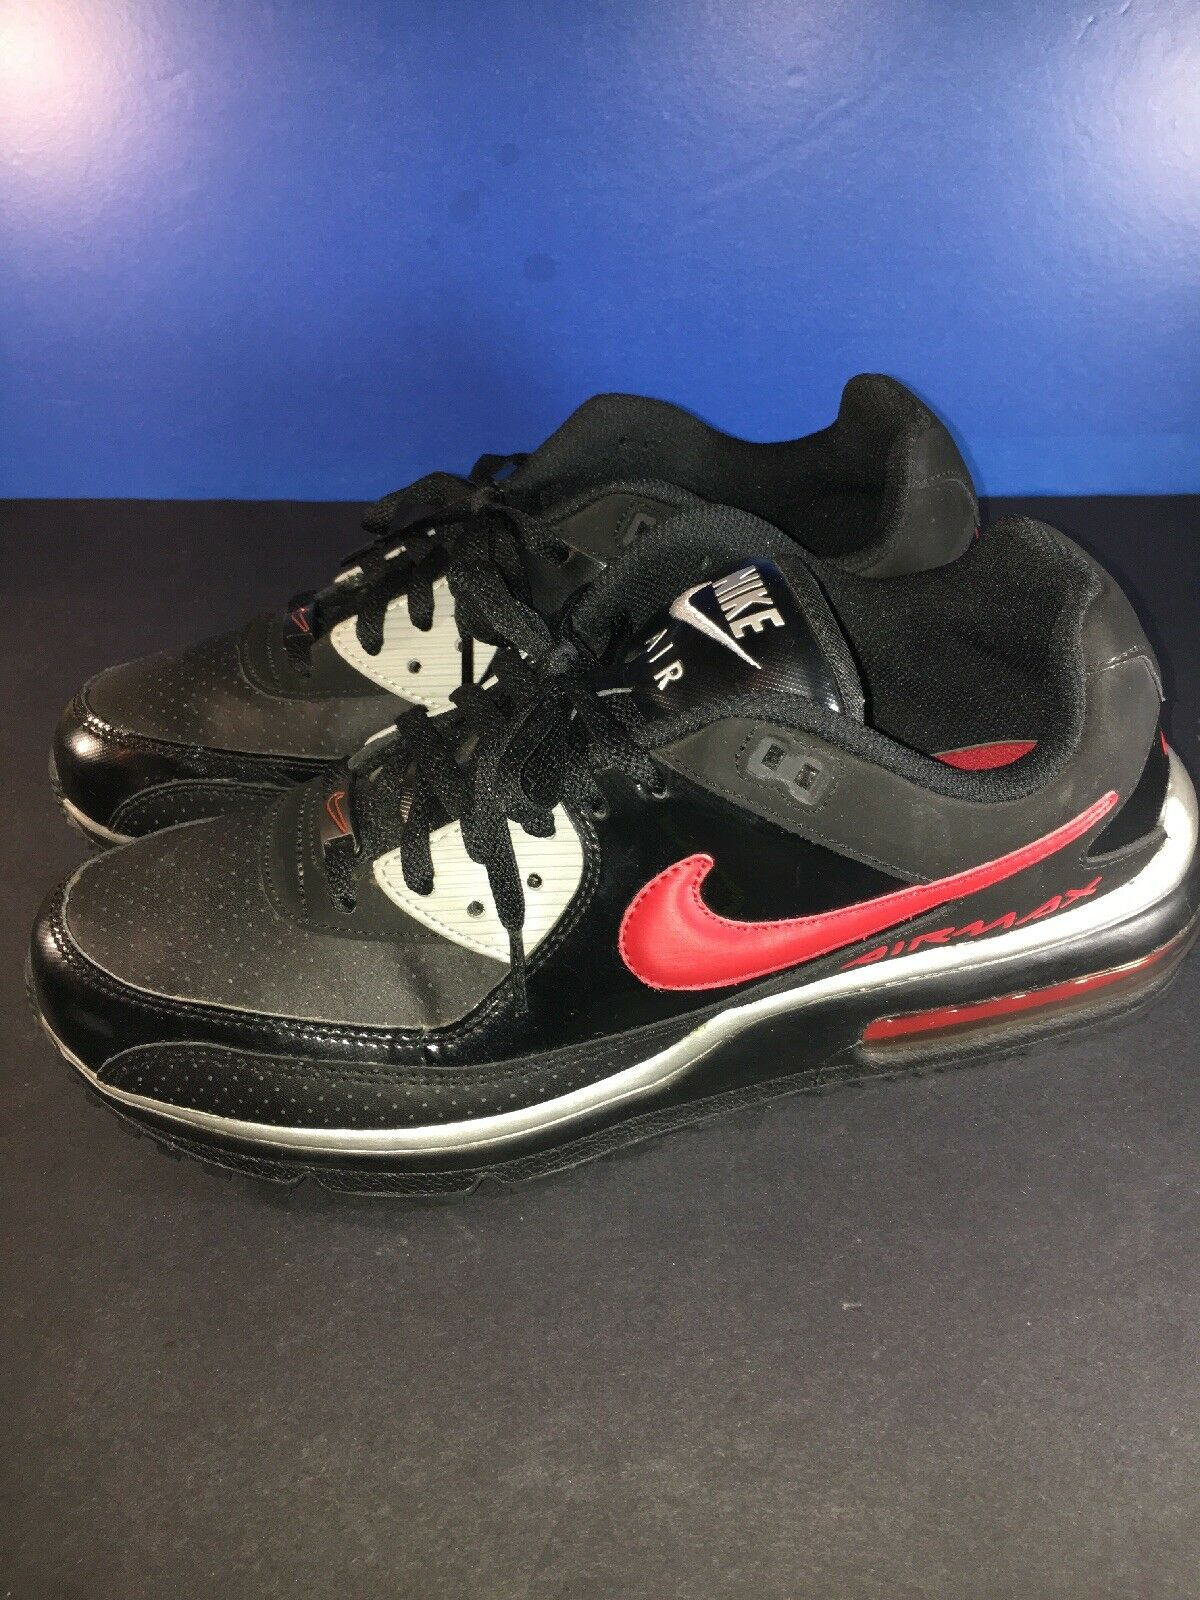 Nike Nike Nike Air Max Wright Size 10.5 Low Black Red Silver 8e5799